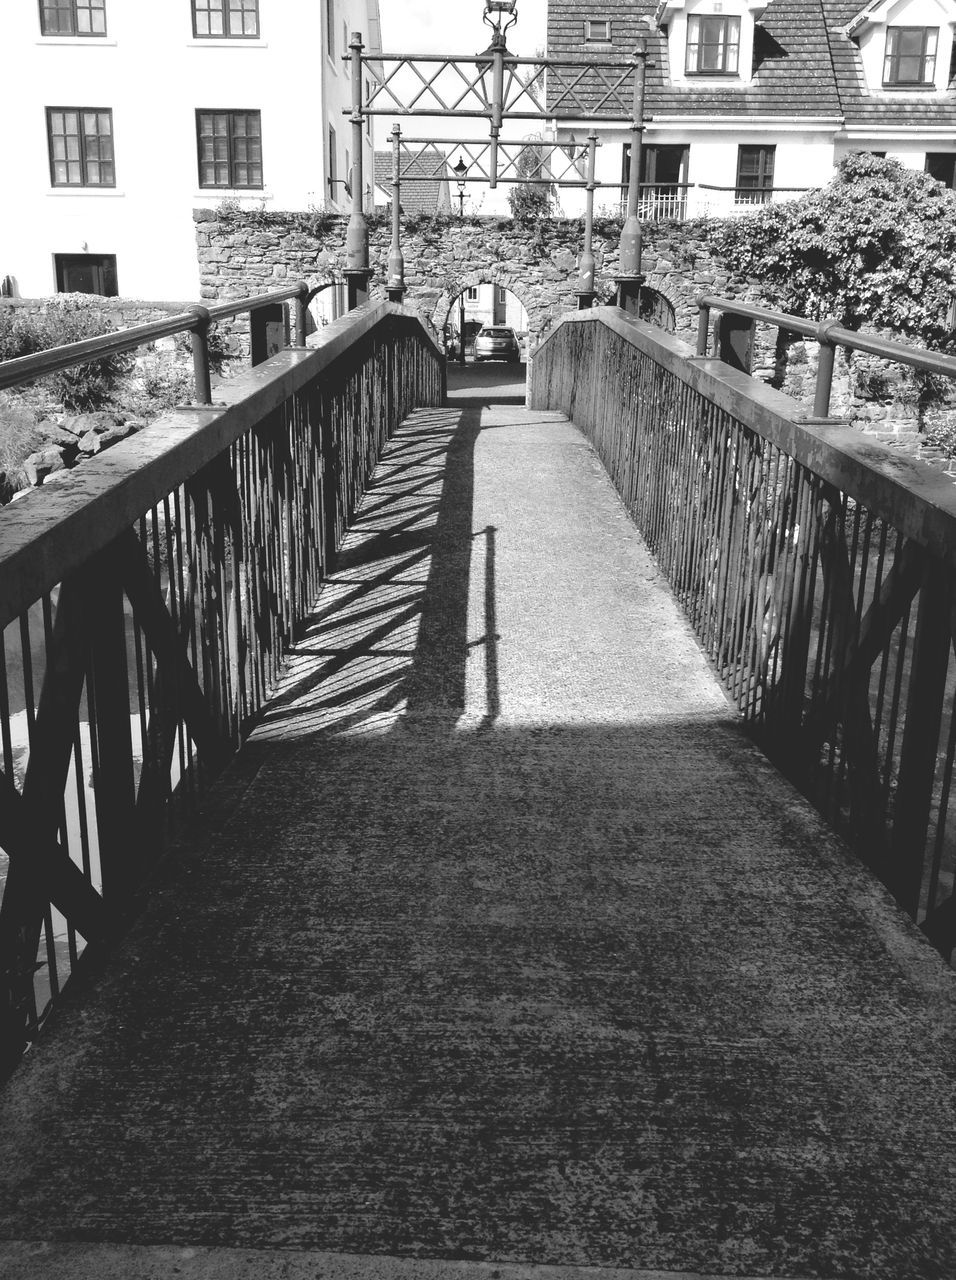 architecture, built structure, building exterior, railing, the way forward, bridge - man made structure, day, city, outdoors, footbridge, no people